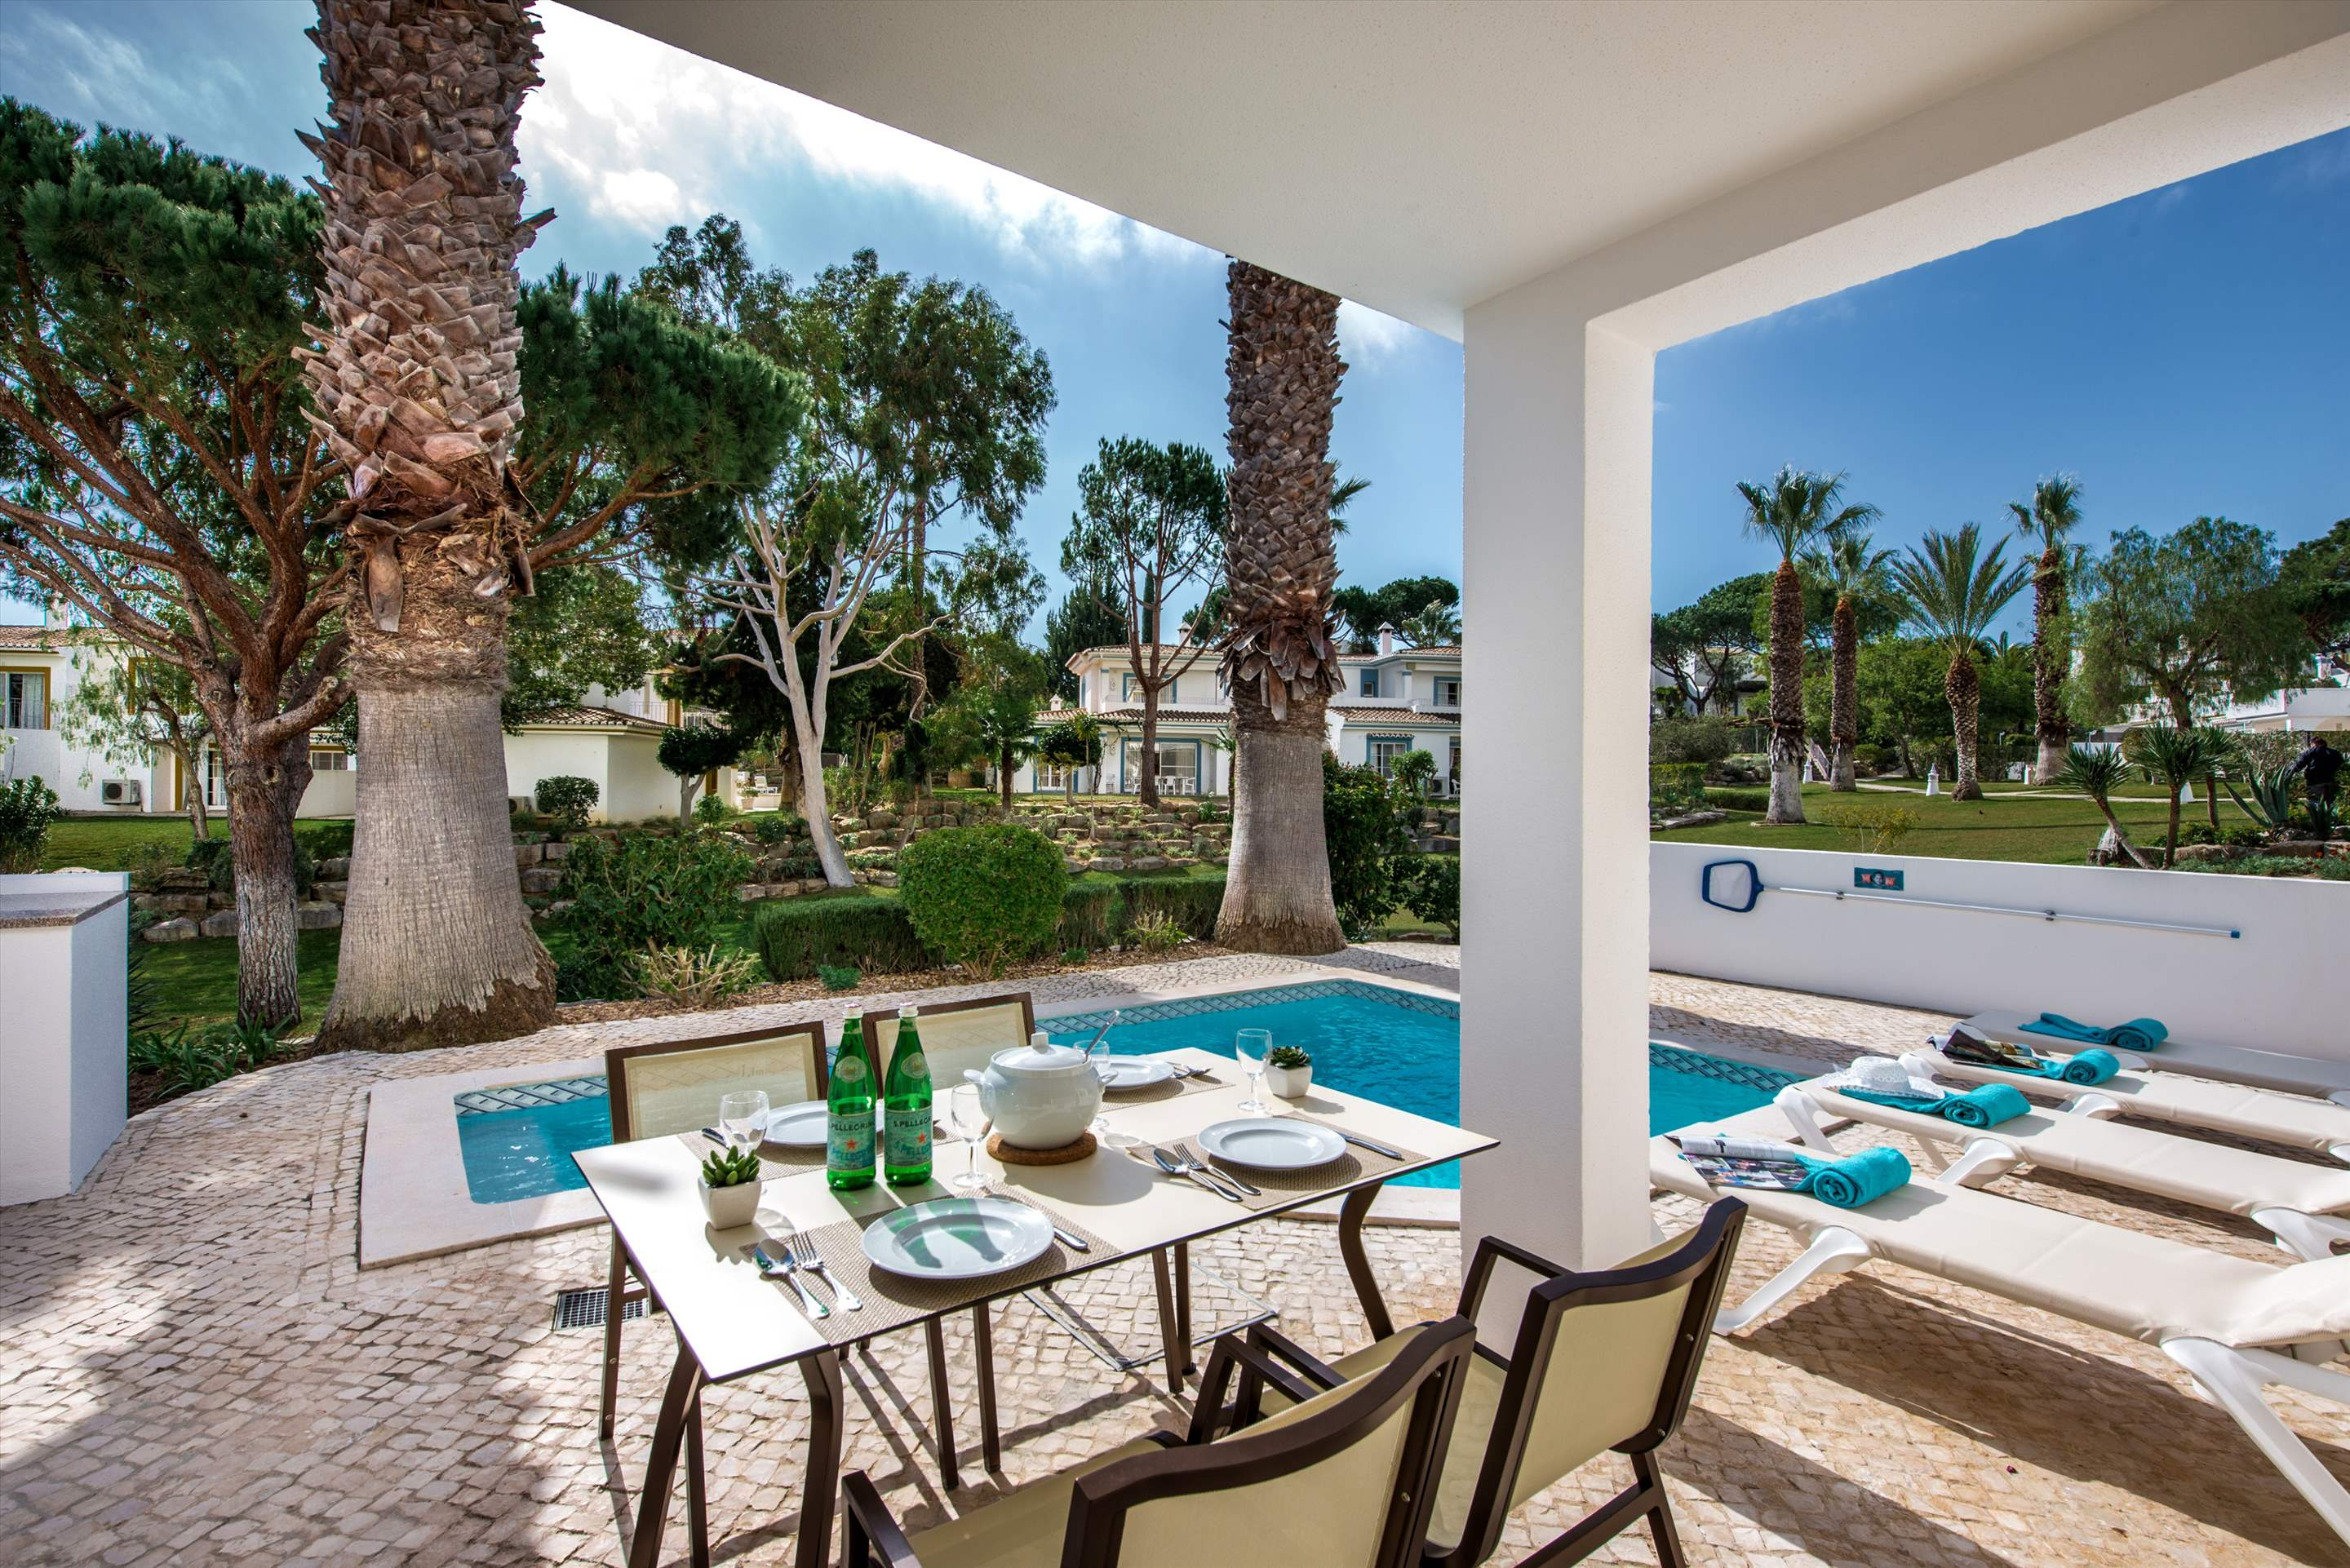 Four Seasons Fairways 3 Bed Hillside Apartment, Thursday Arrival, 3 bedroom villa in Four Seasons Fairways, Algarve Photo #18